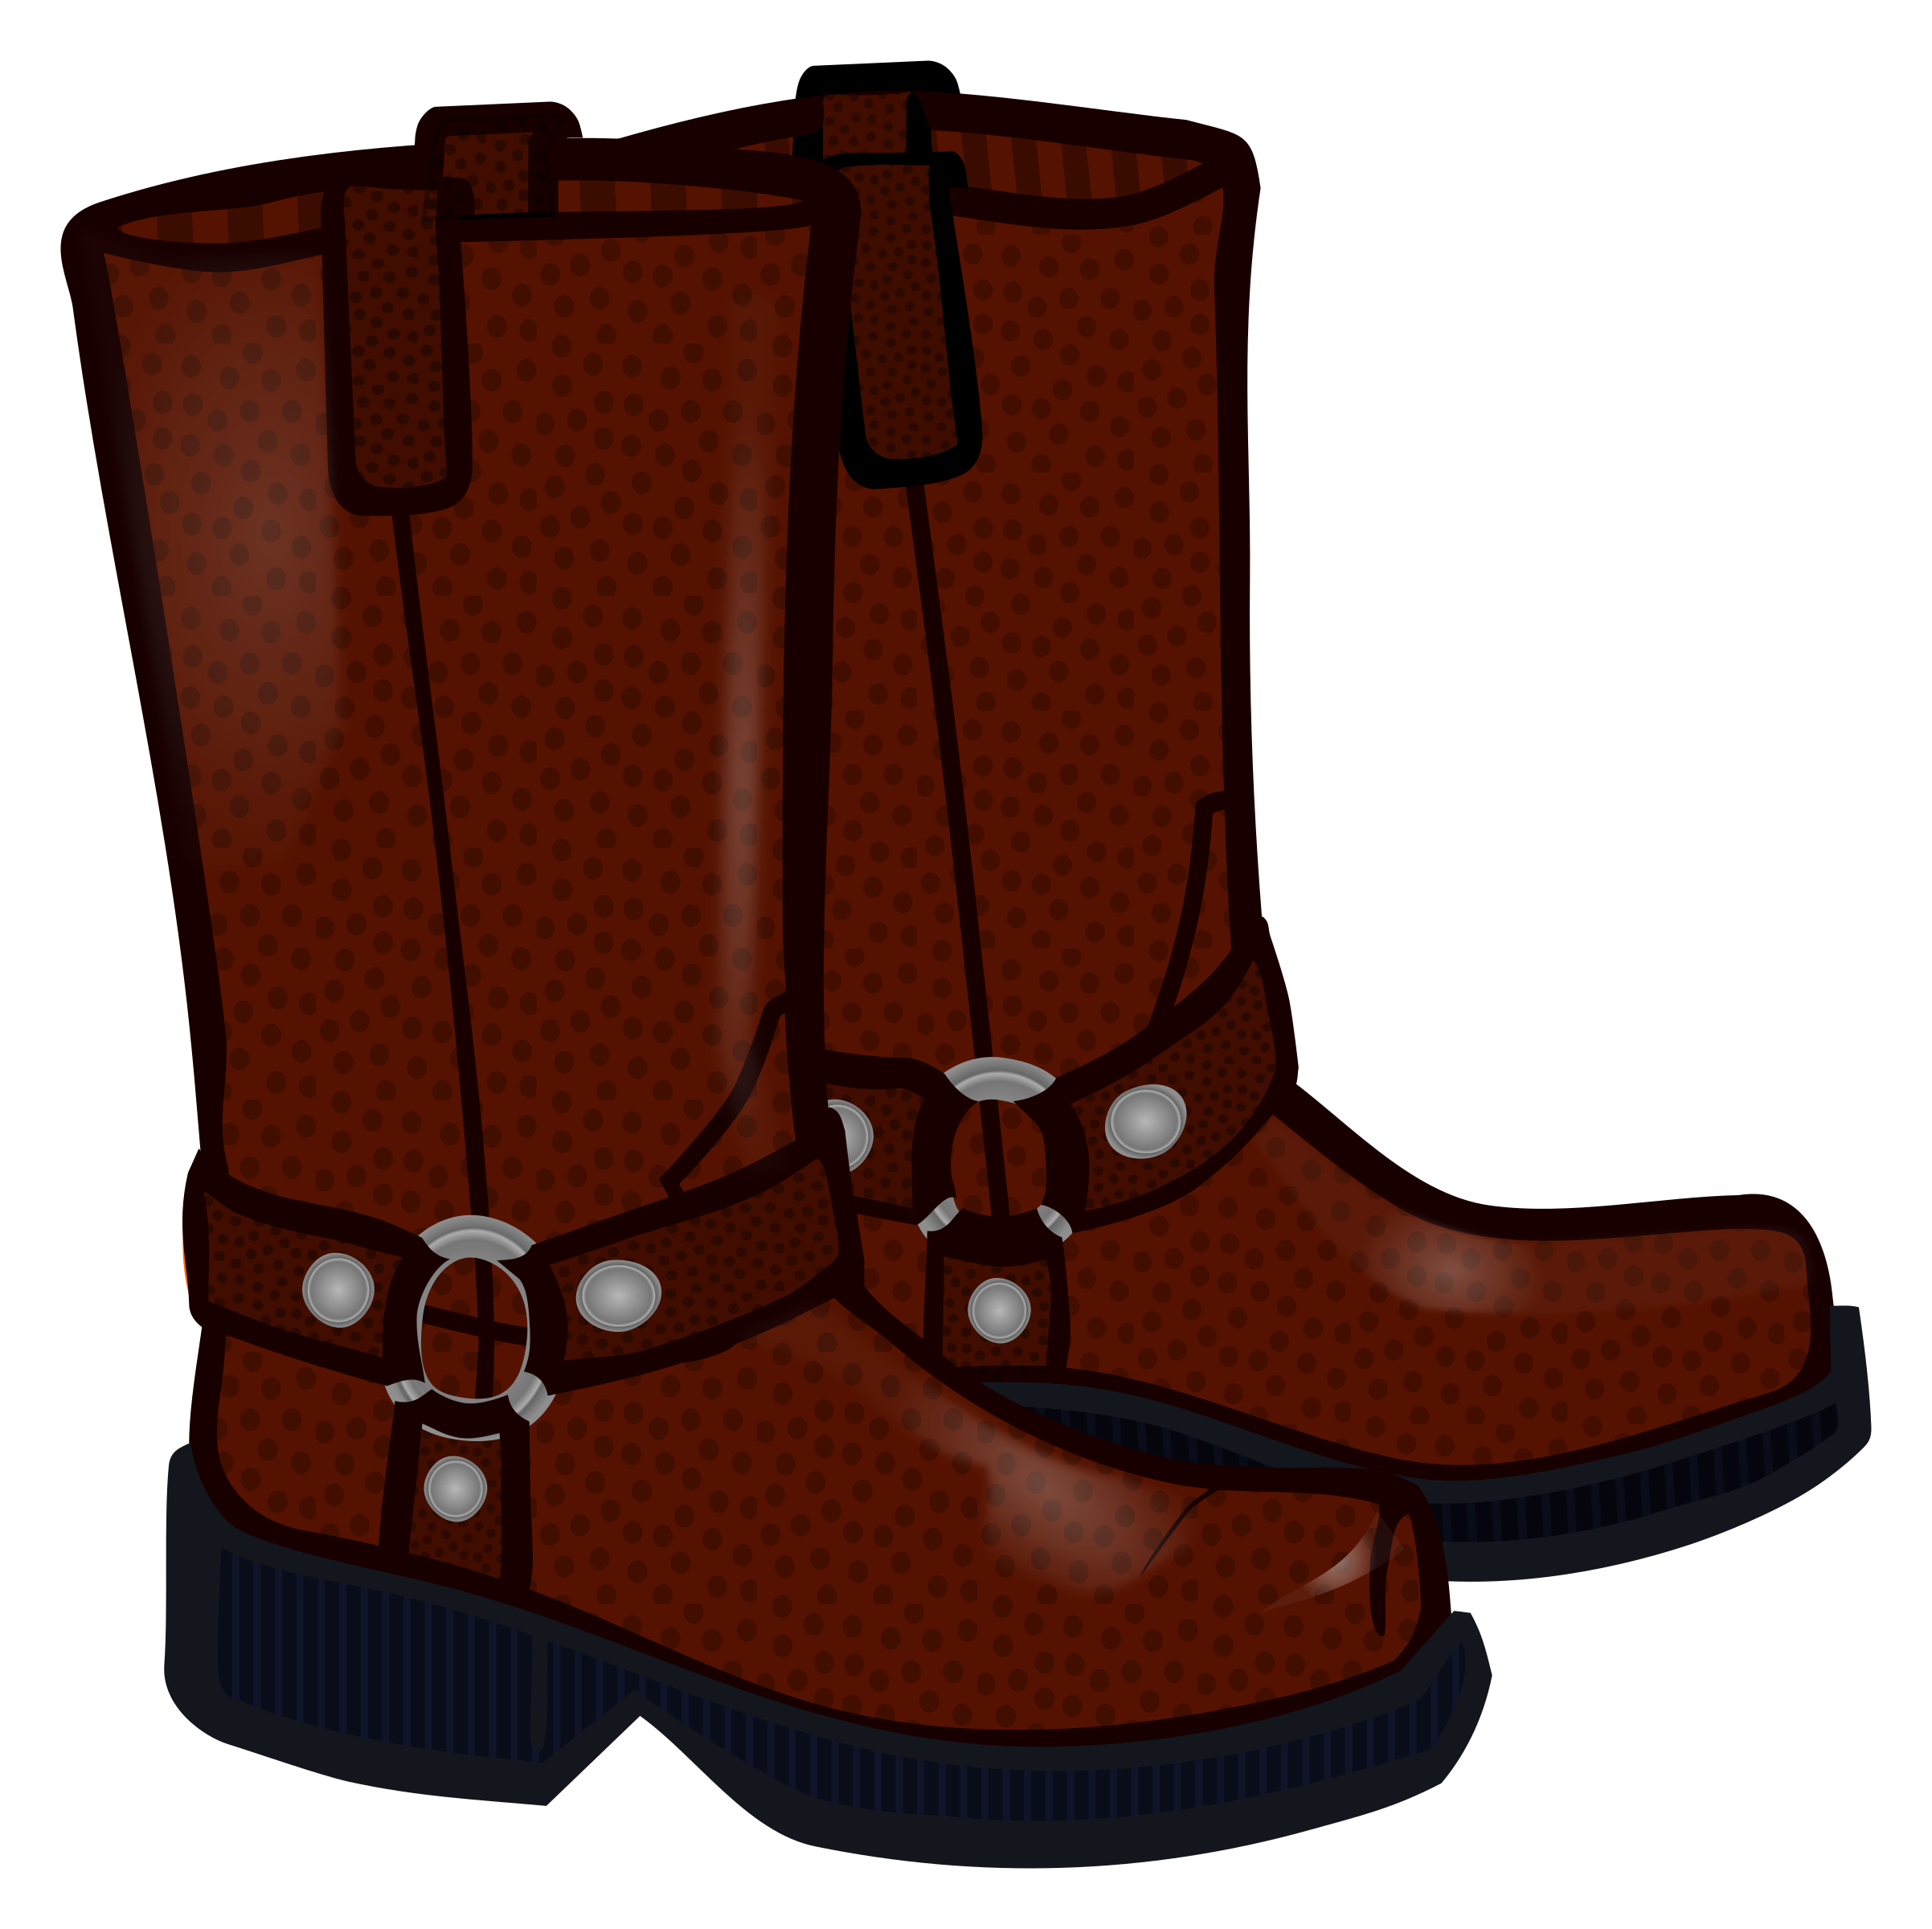 graphic royalty free download Coloured big image png. Boots clipart